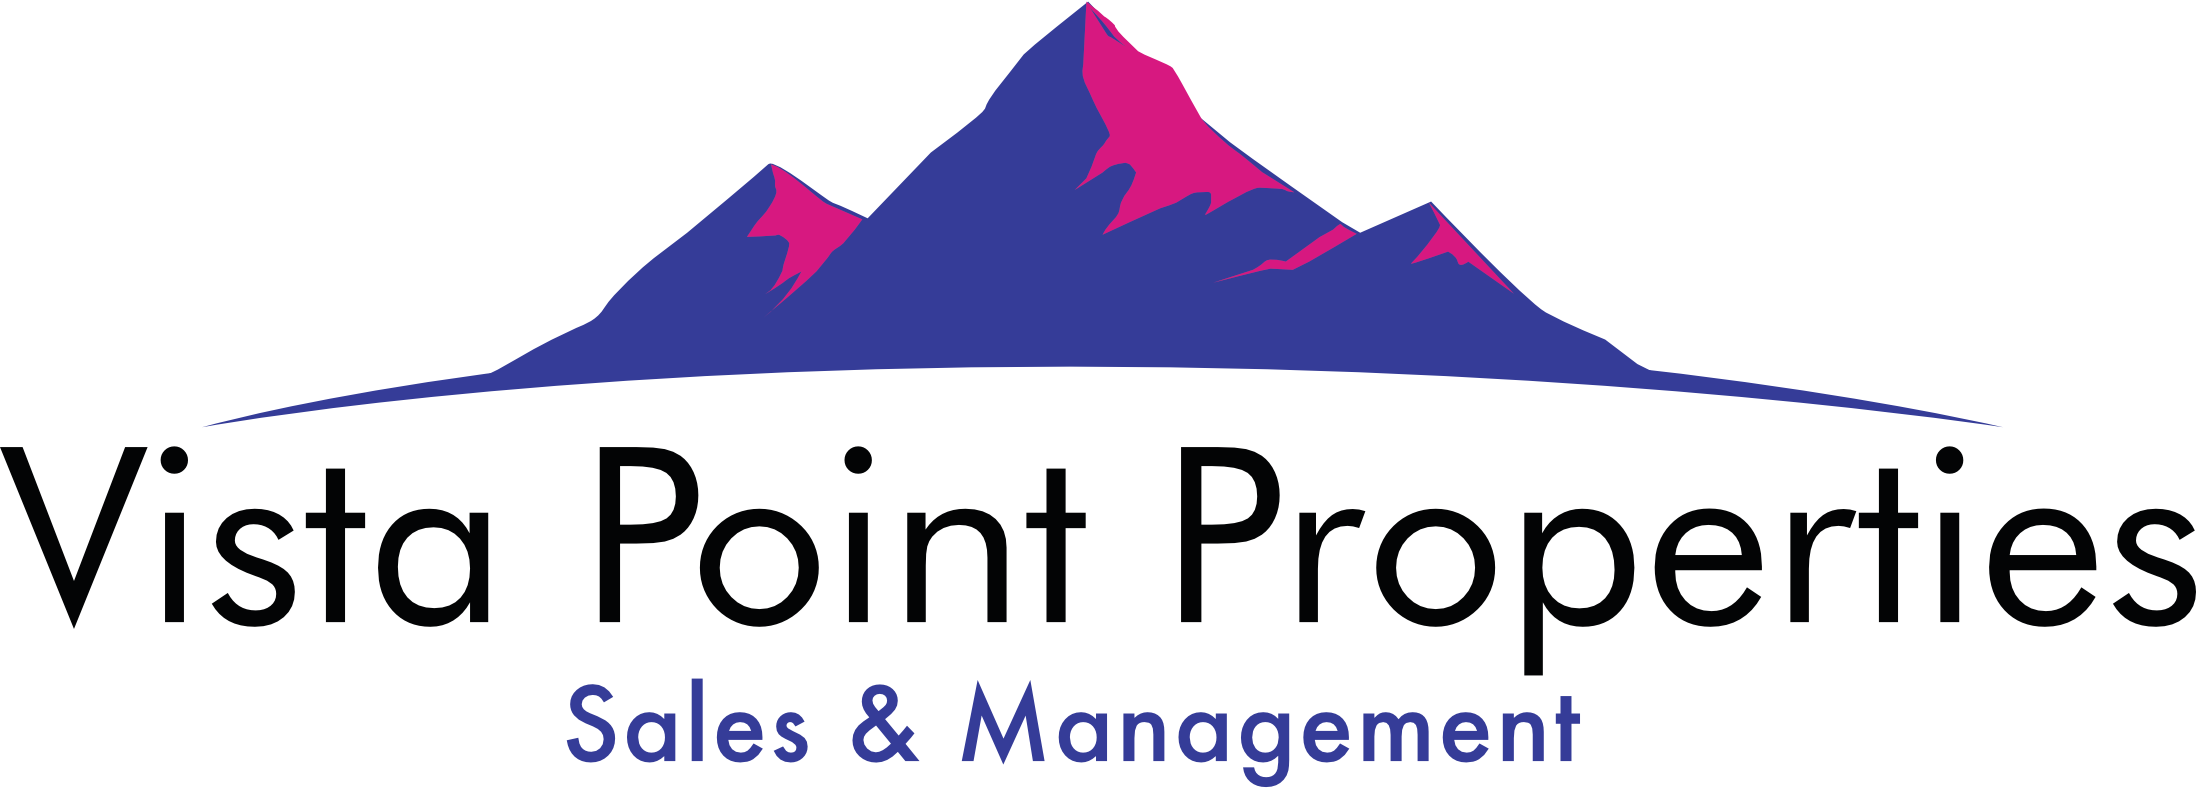 Vista Point Properties | Listing Not Available - Vista Point Properties